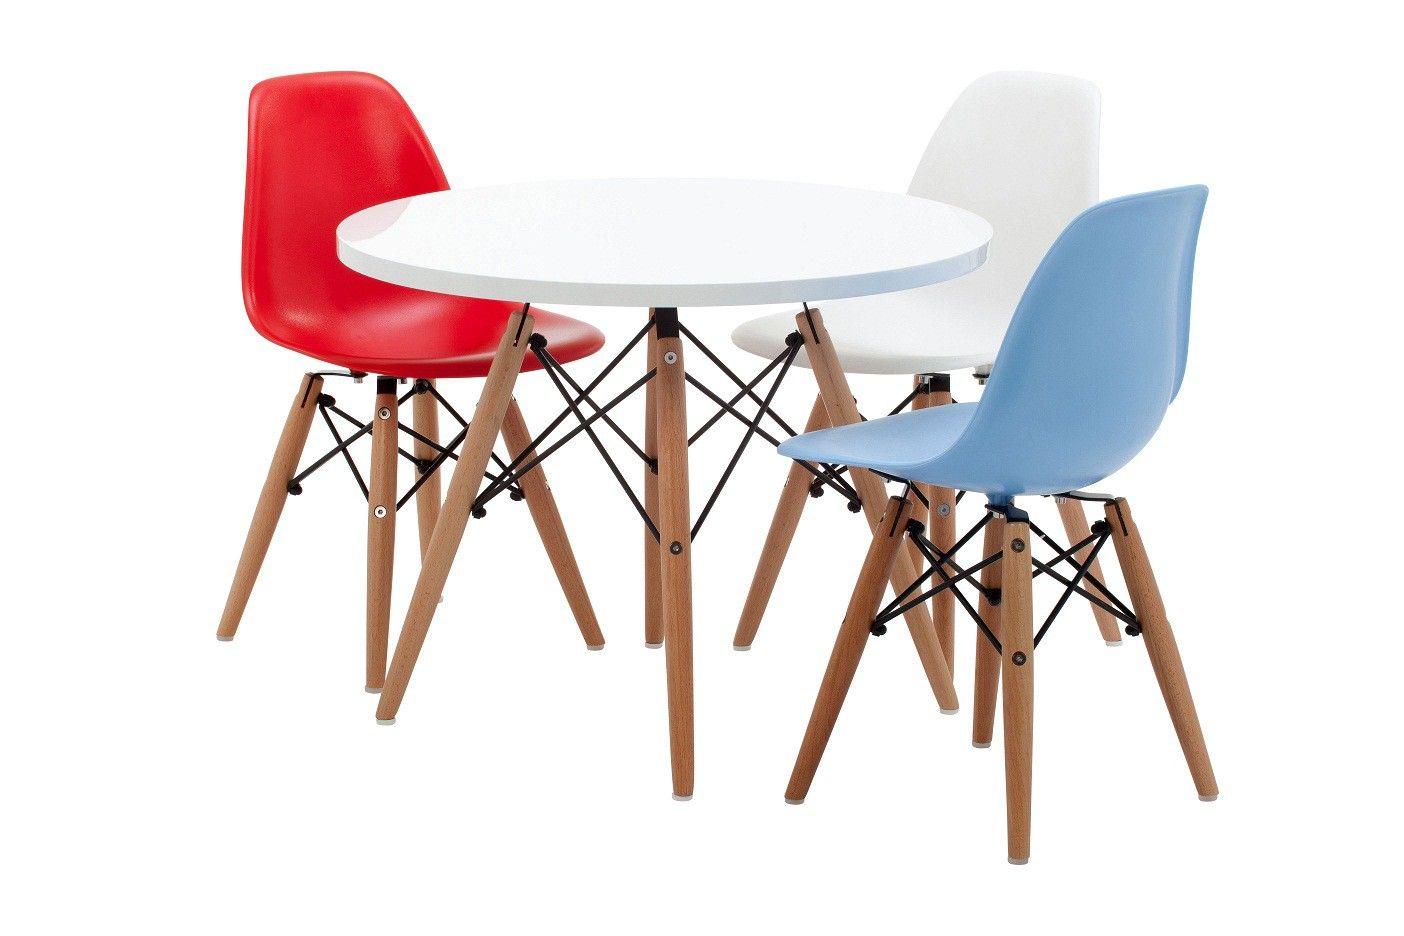 Eames Elephant Replica Kidz Zone Furniture. White Table With 4 Coloured Chairs